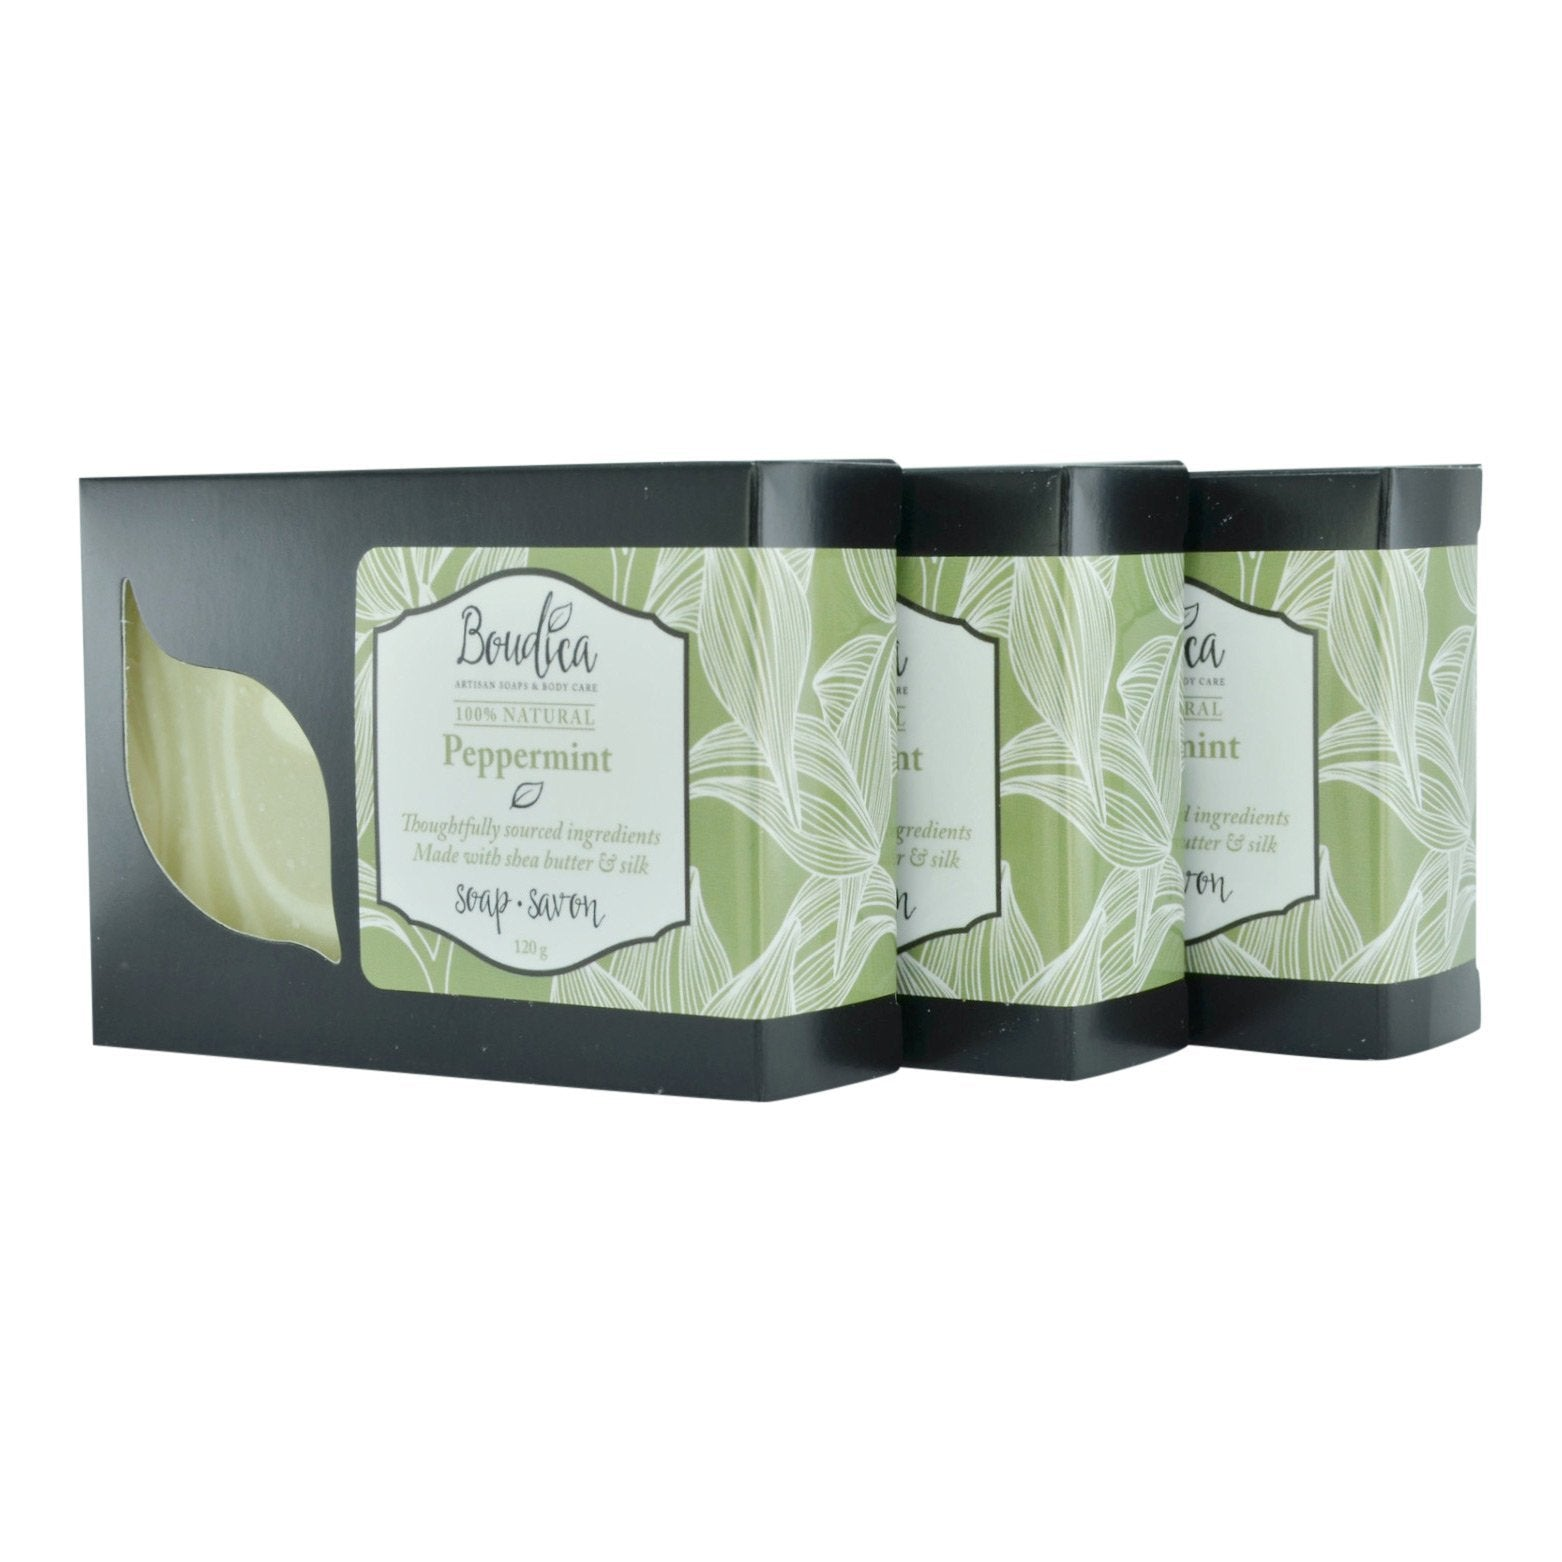 Peppermint soap, gift packaging - Boudica Body Care